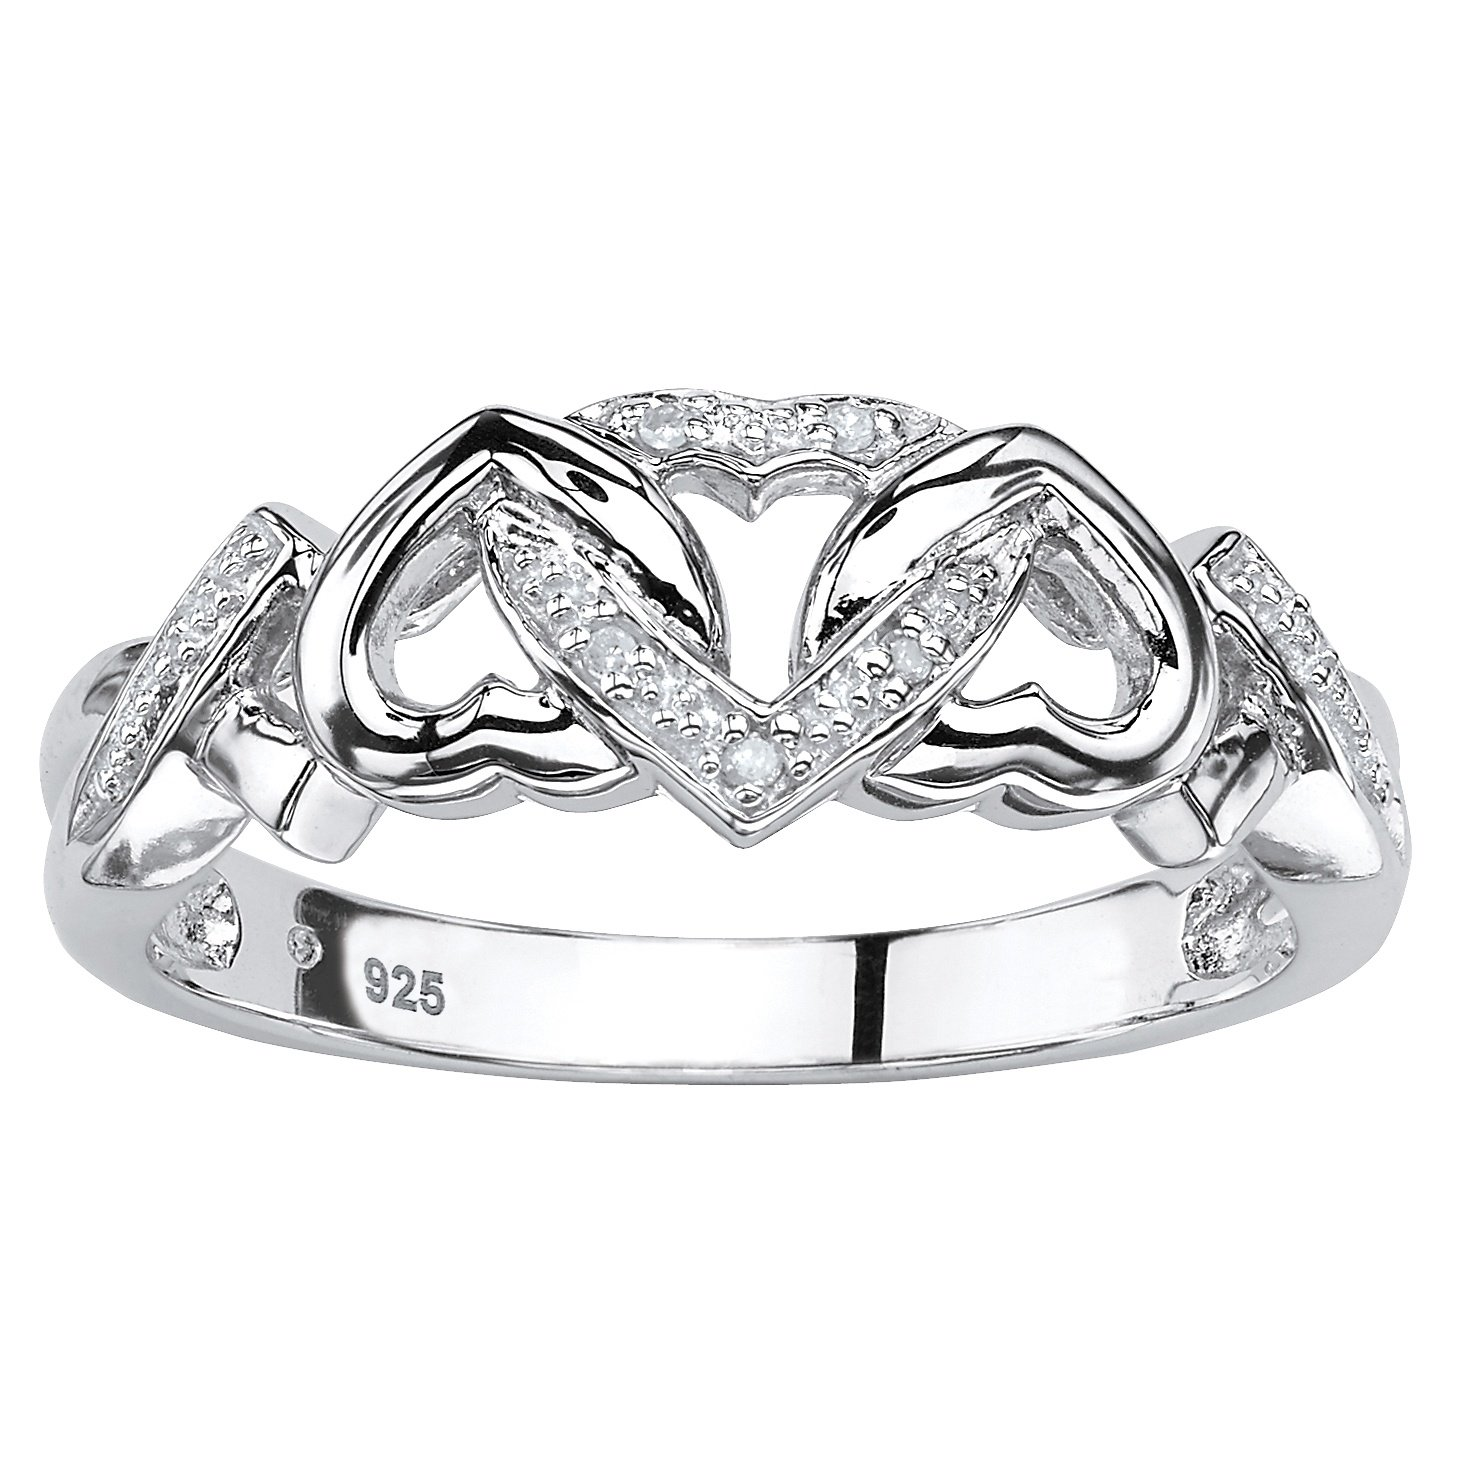 Platinum over Sterling Silver Diamond Accent Interlocking Heart Promise Ring Size 5